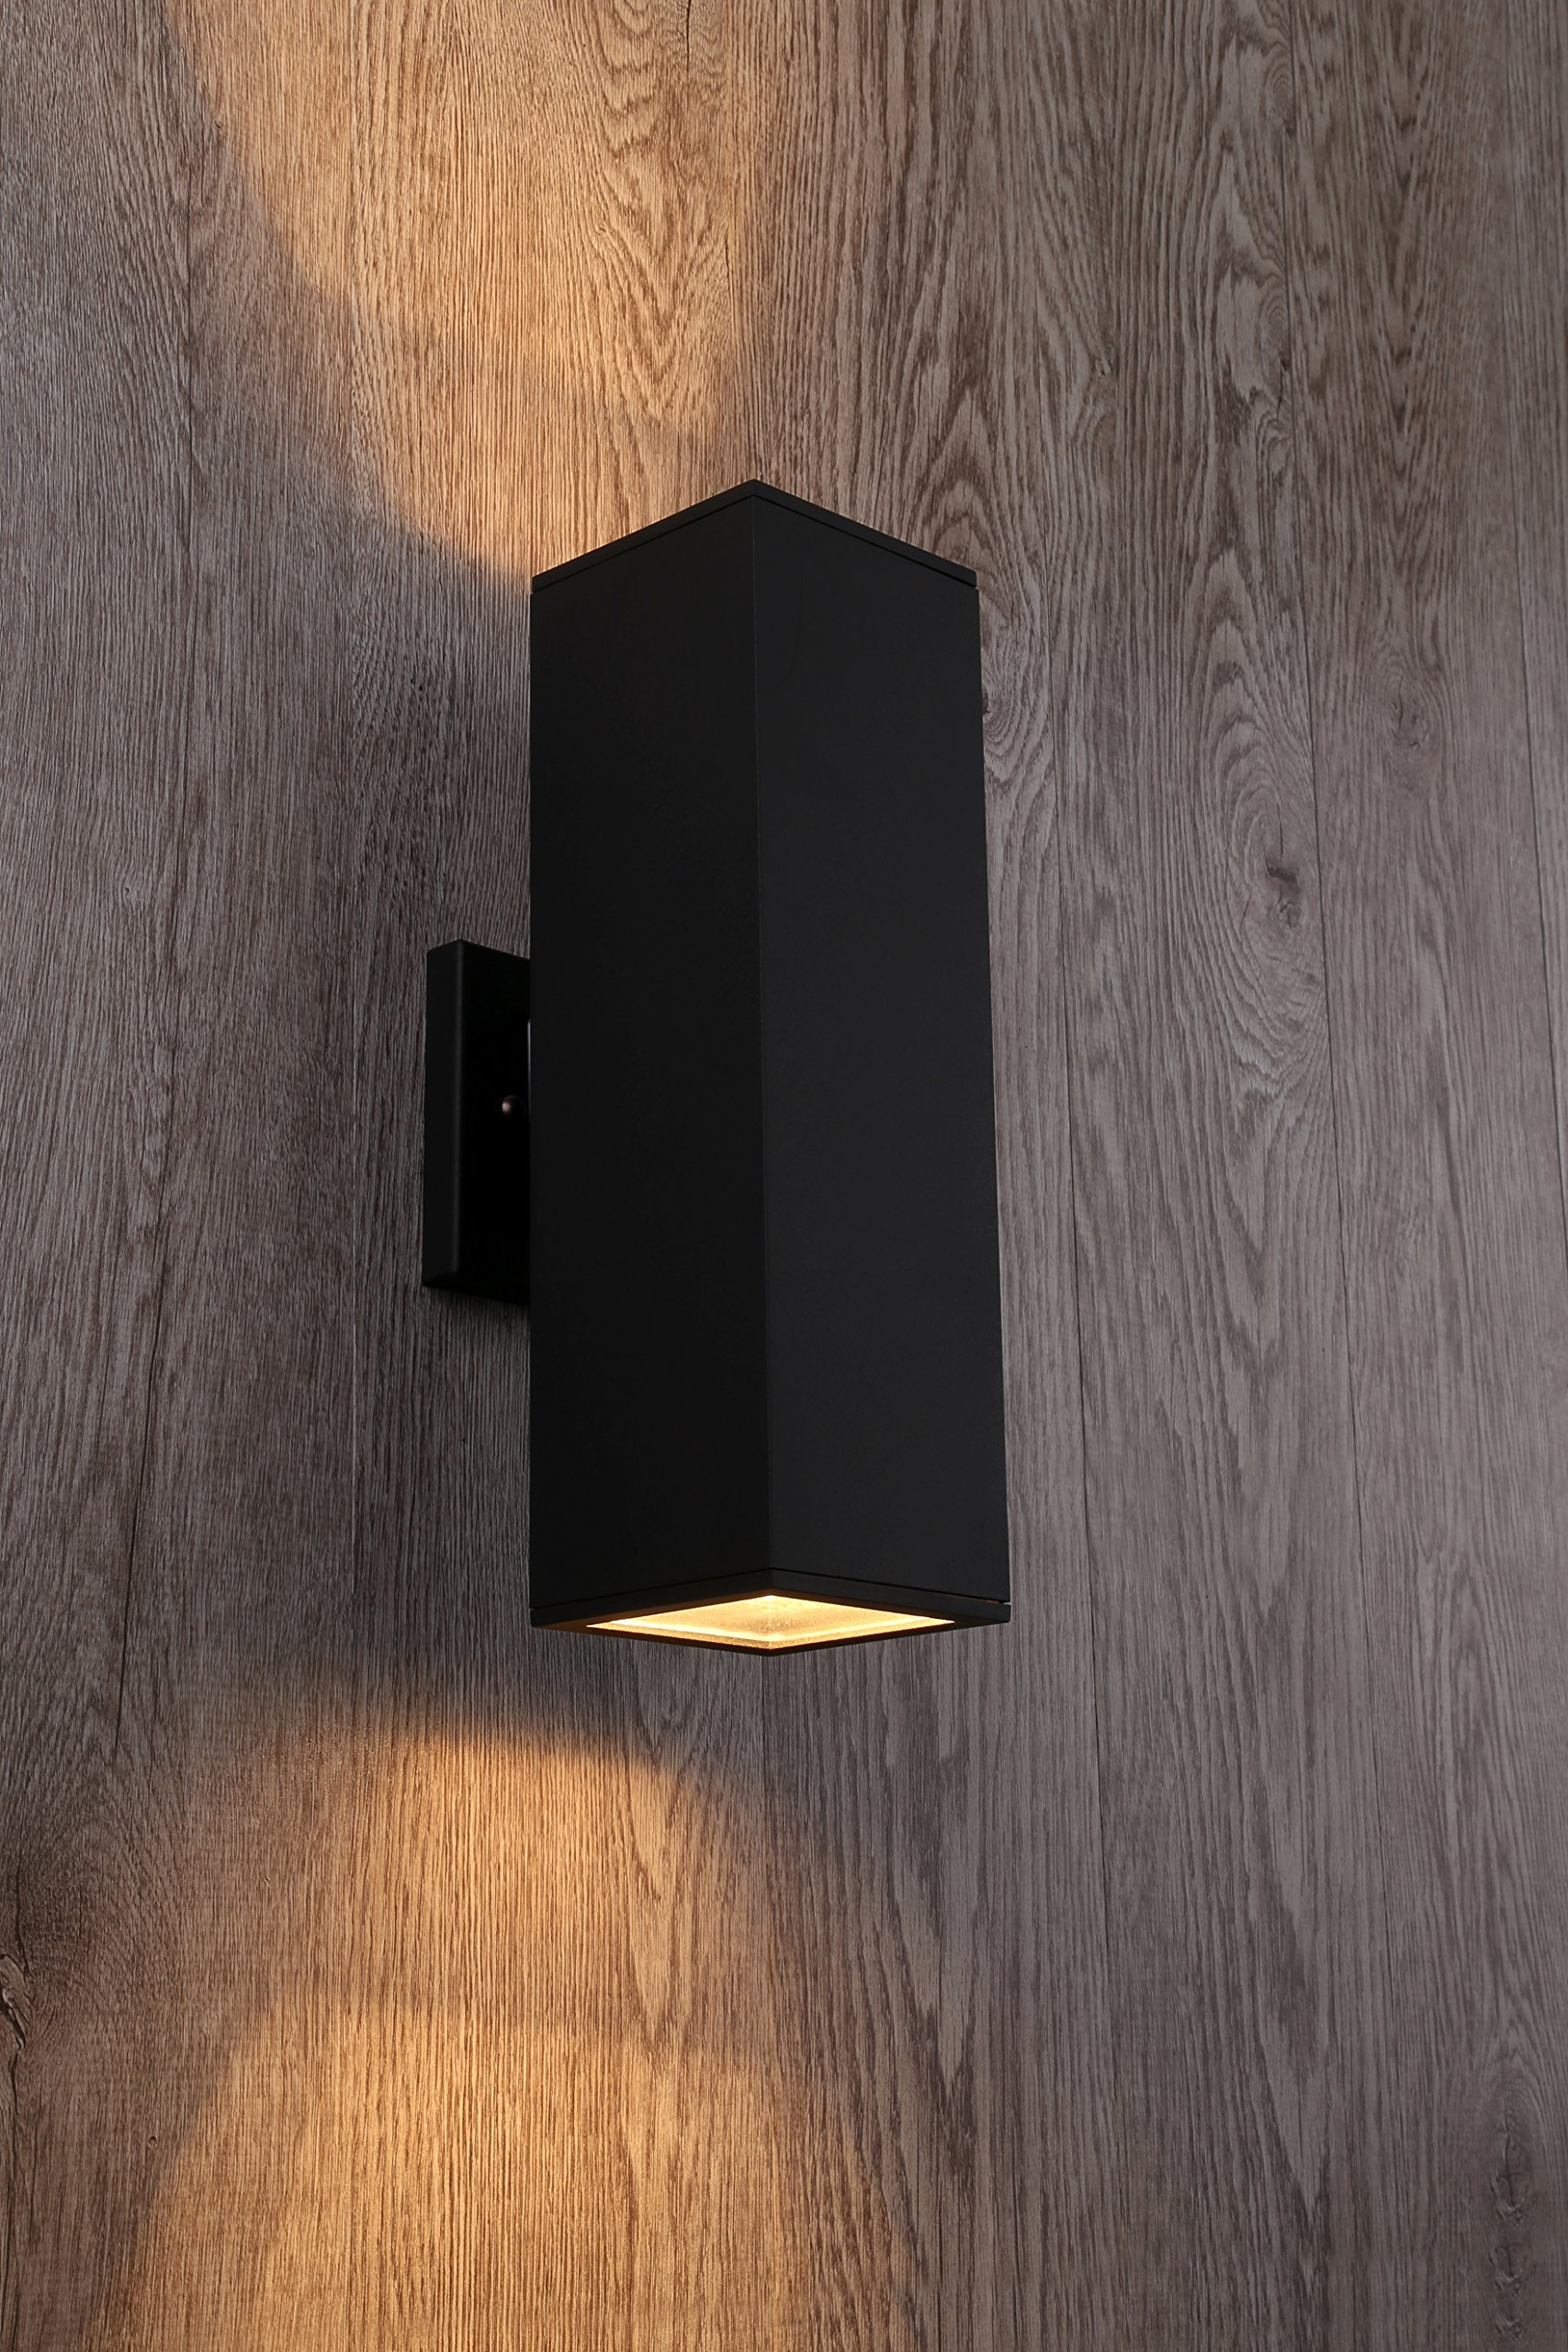 Cerdeco 37858TZ Brandon 2-Light Outdoor Wall Lamp, Matte Black [UL Listed] by Cerdeco